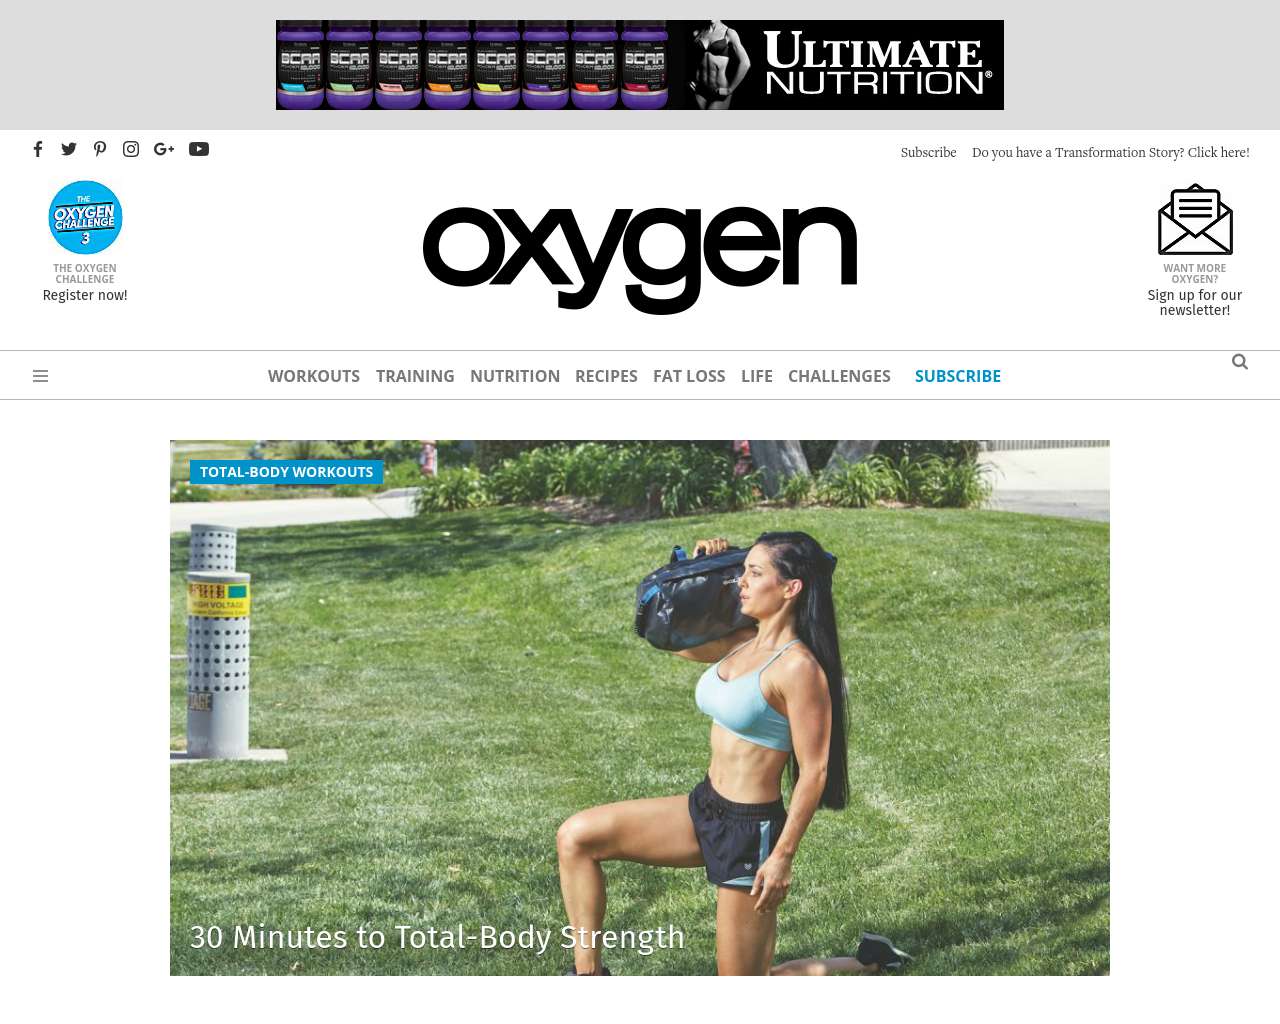 Oxygen-Women's-Fitness-Advertising-Reviews-Pricing